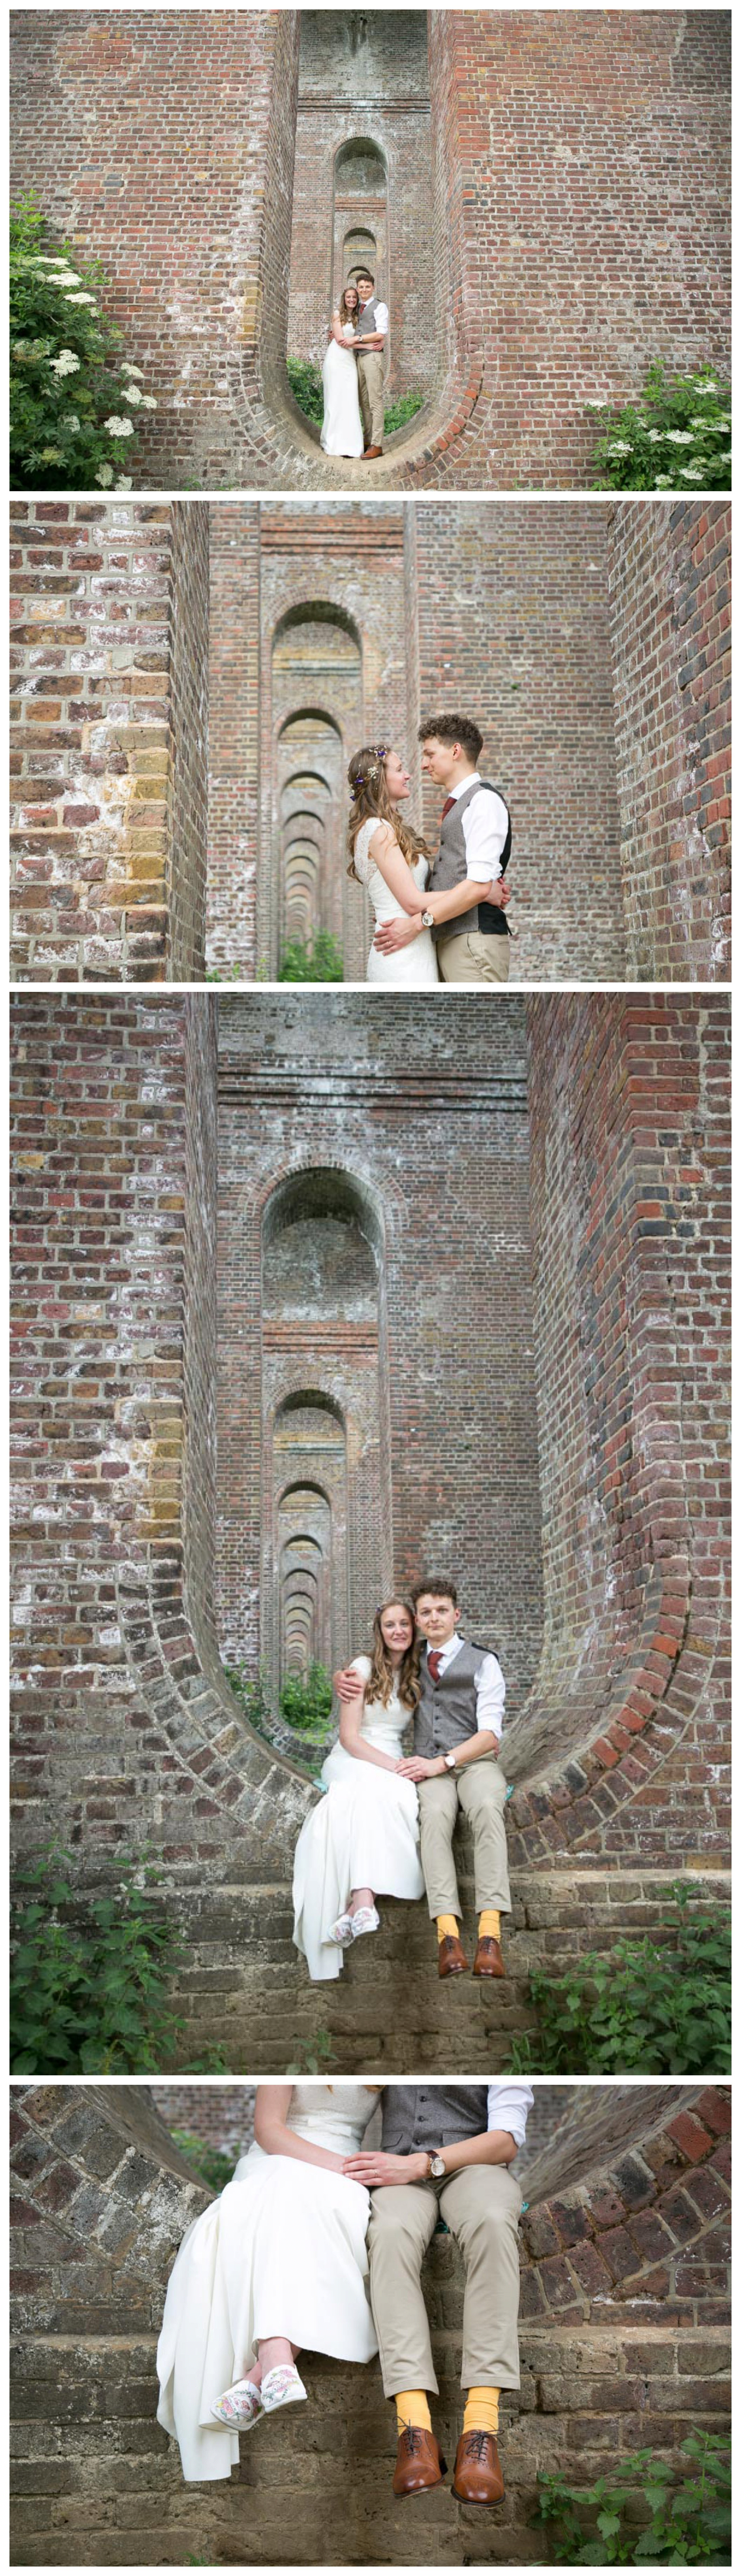 bride and groom portriats at Chappel viaduct, sitting in viaduct curve, bridge going off into distance